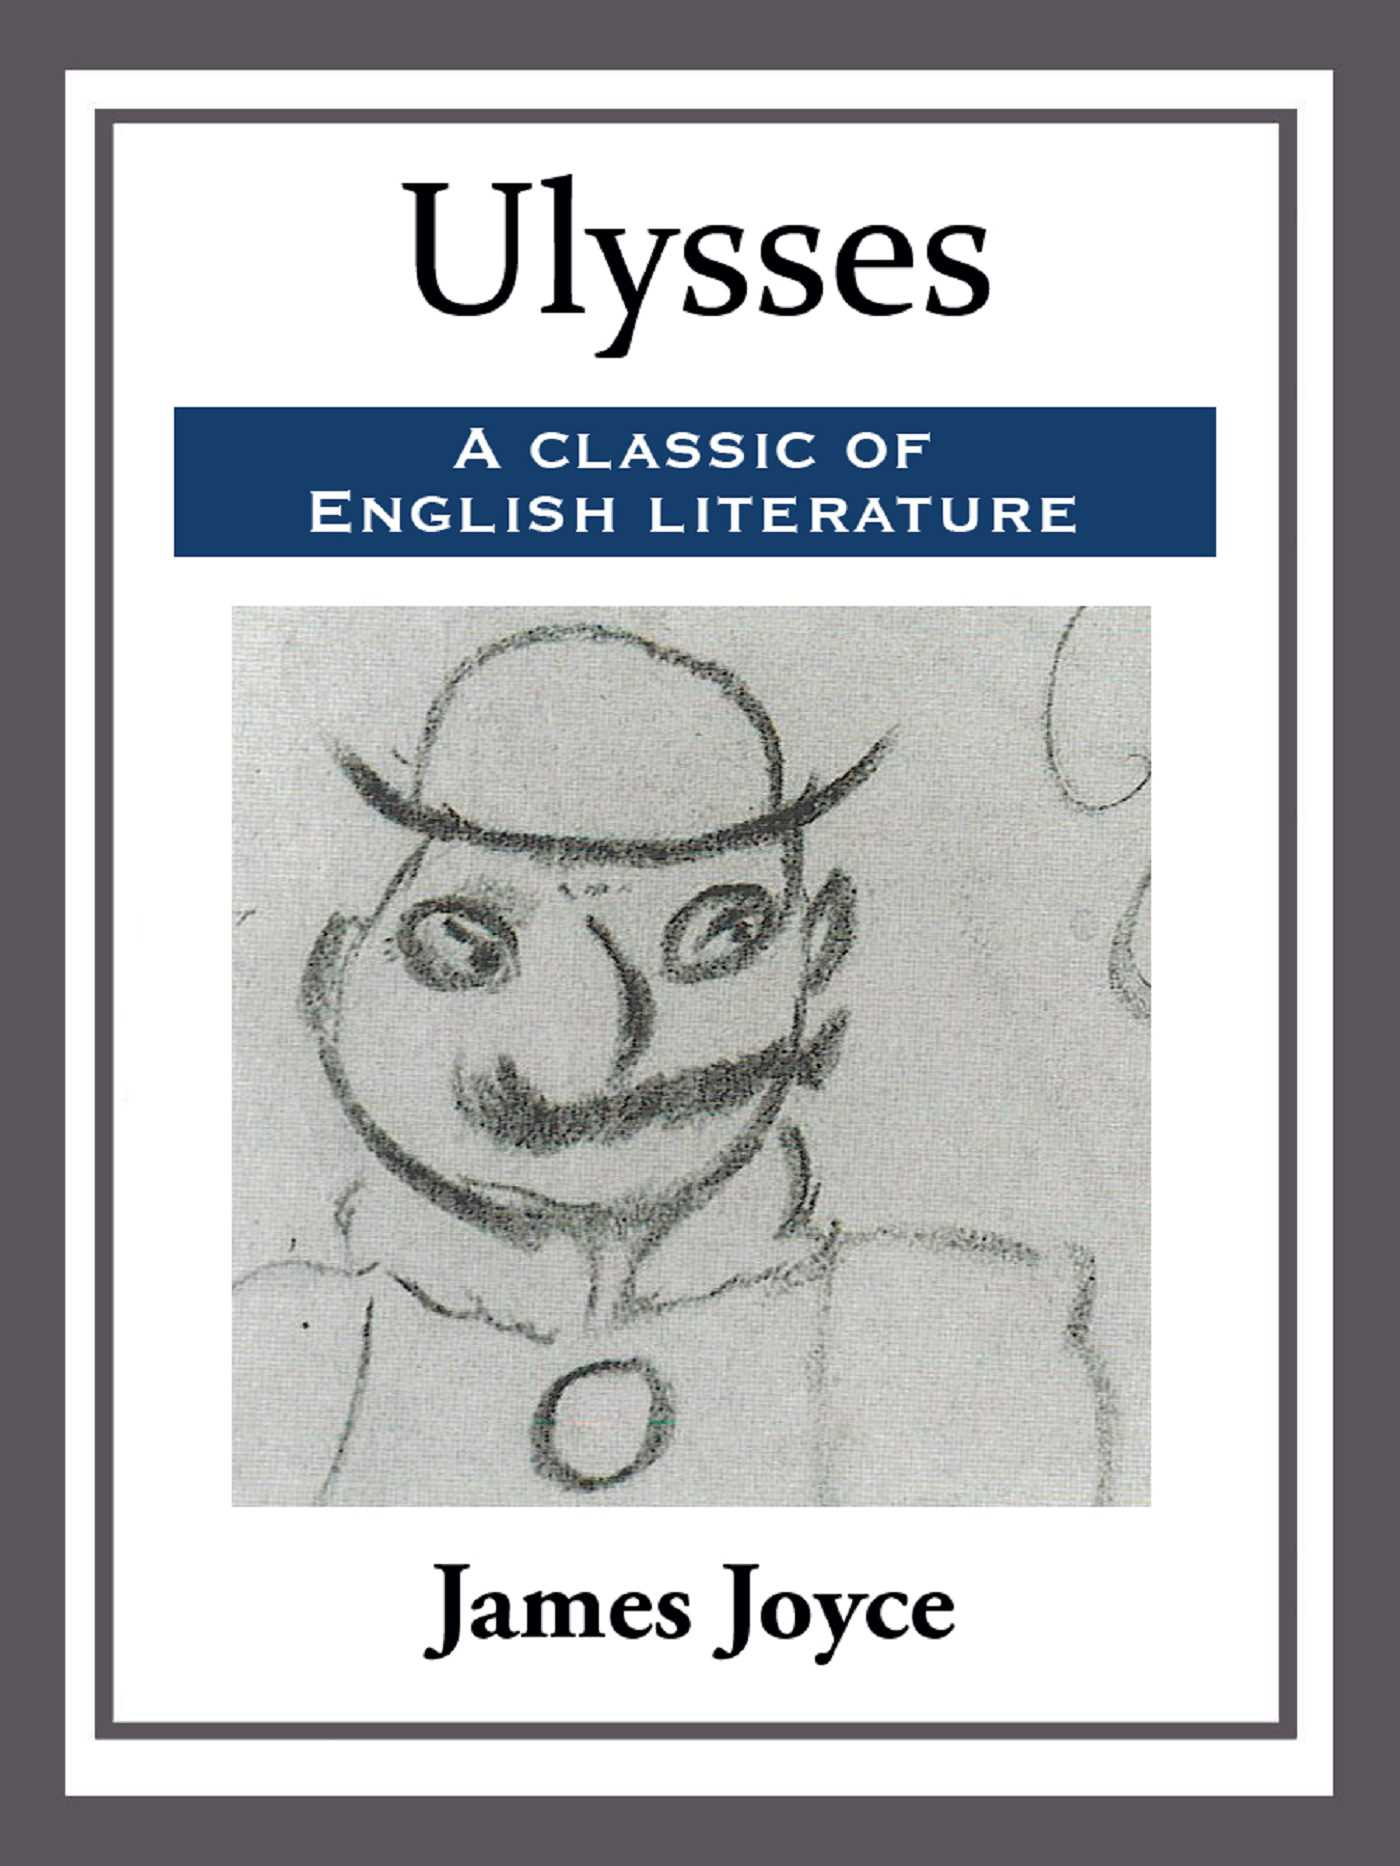 analysis of the novel ulysses written by james joyce and comparison with homers odyssey Women in homer's odyssey, joyce's ulysses and walcott's omeros this essay explores the role of women in homer's odyssey, james joyce's ulysses (1922) and derrick walcott's omeros (1990), epics written in very different historical periods.